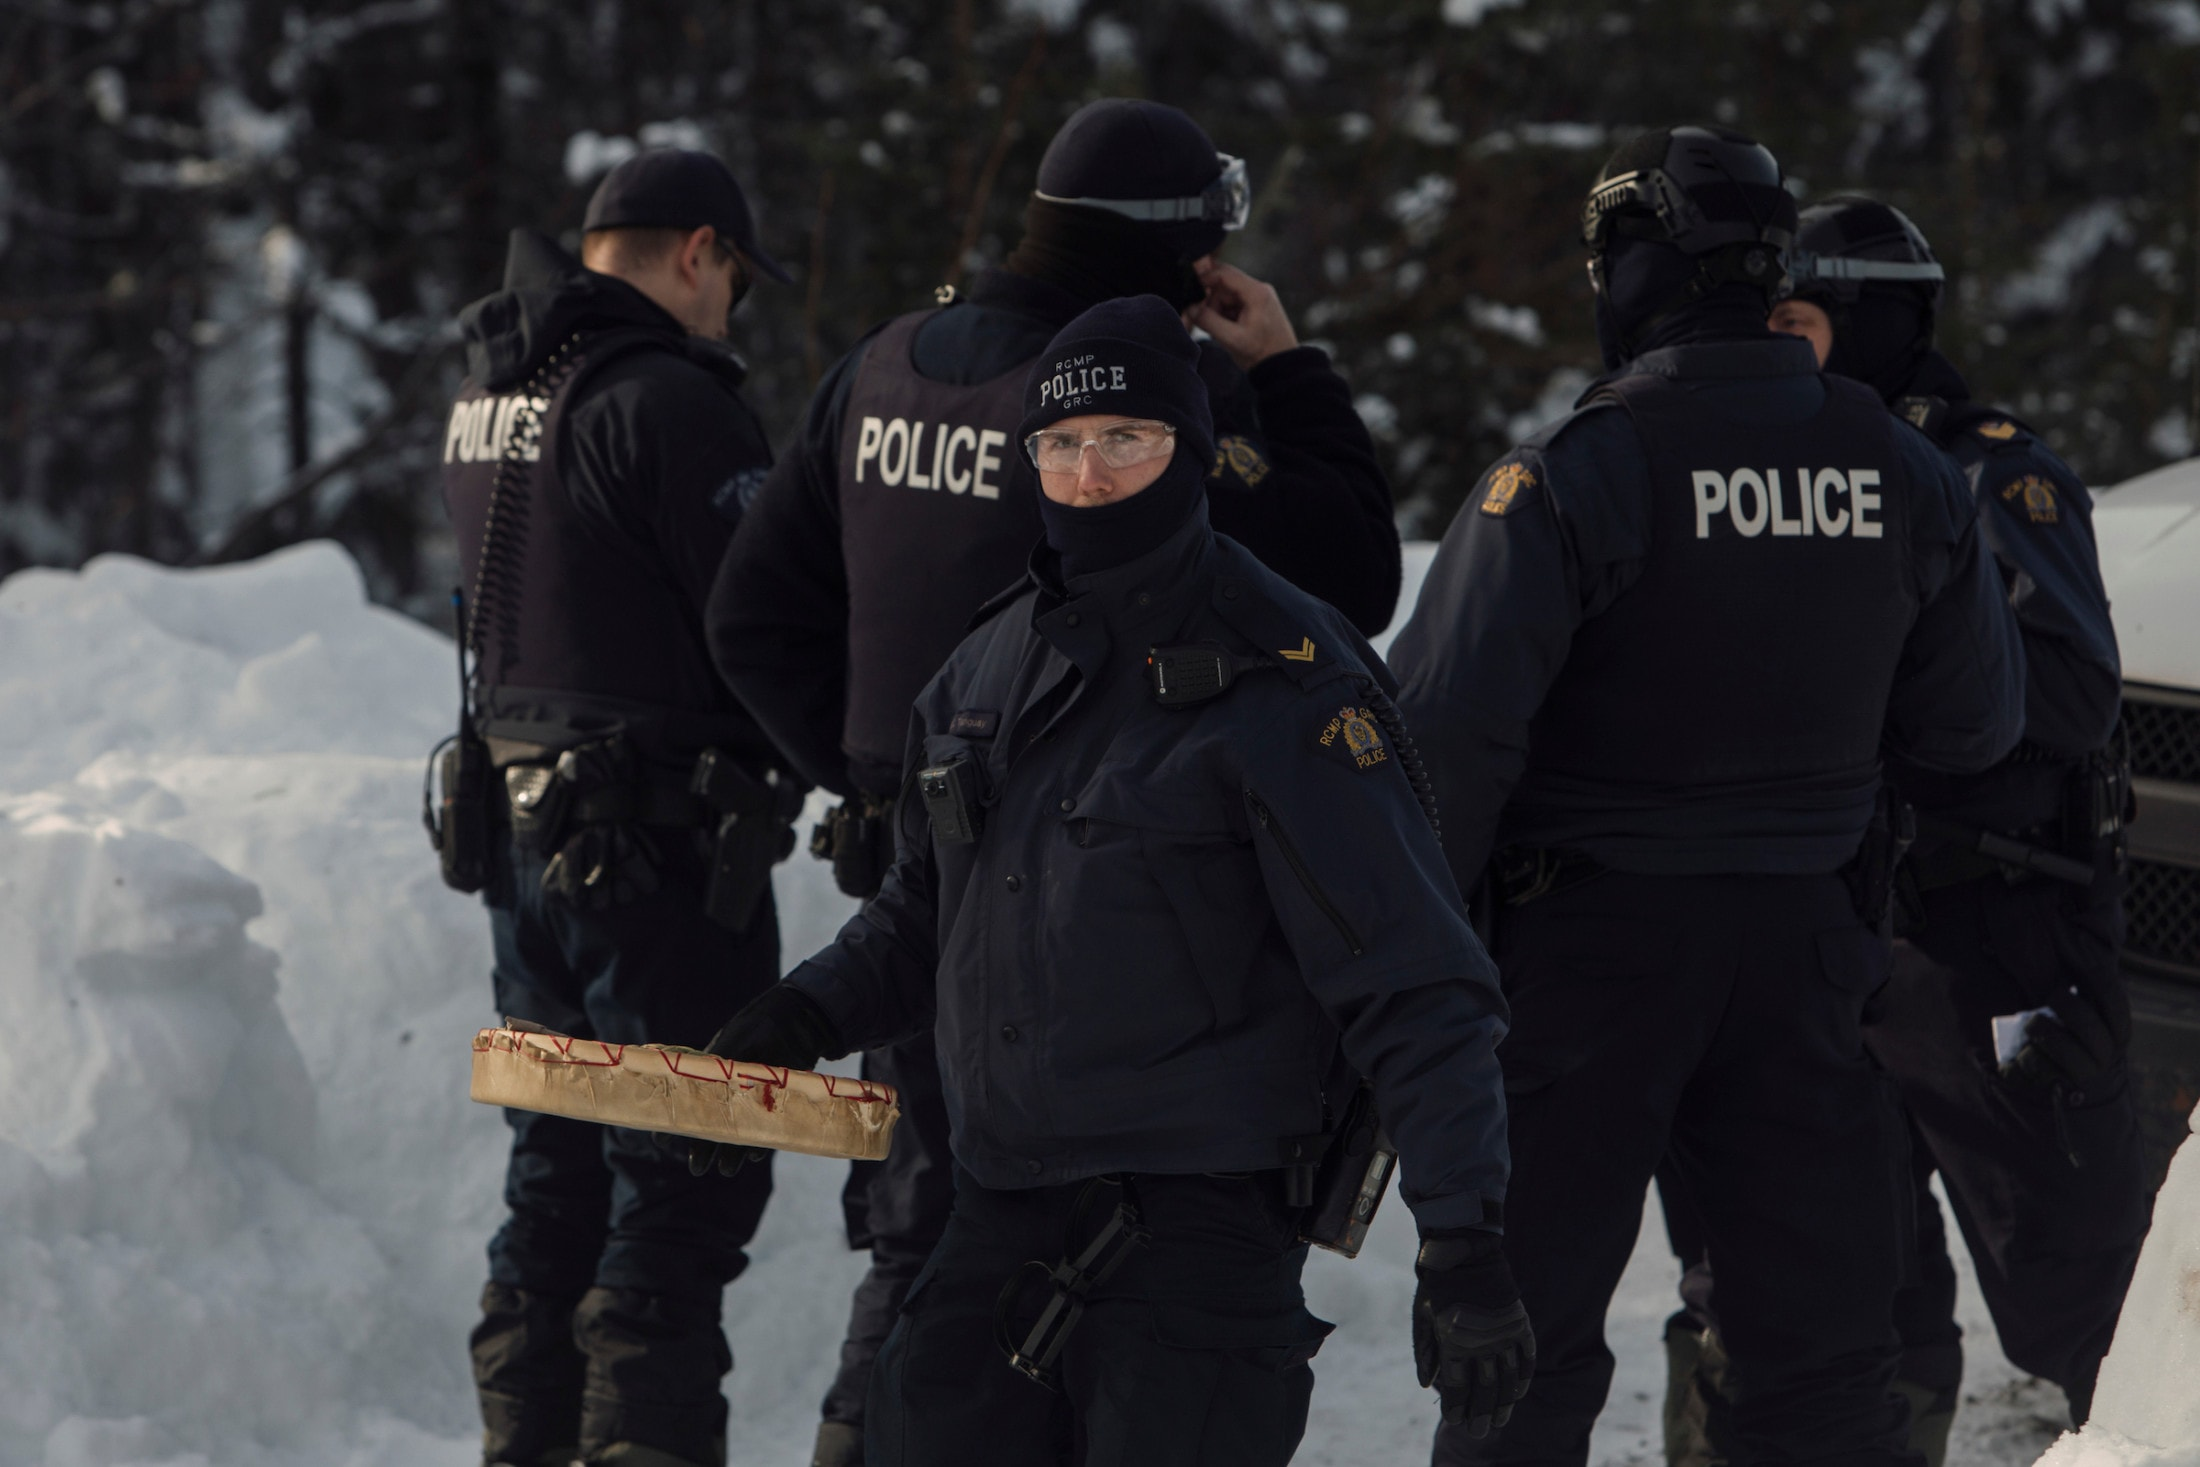 RCMP Coastal GasLink injunction arrests Unist'ot'en camp